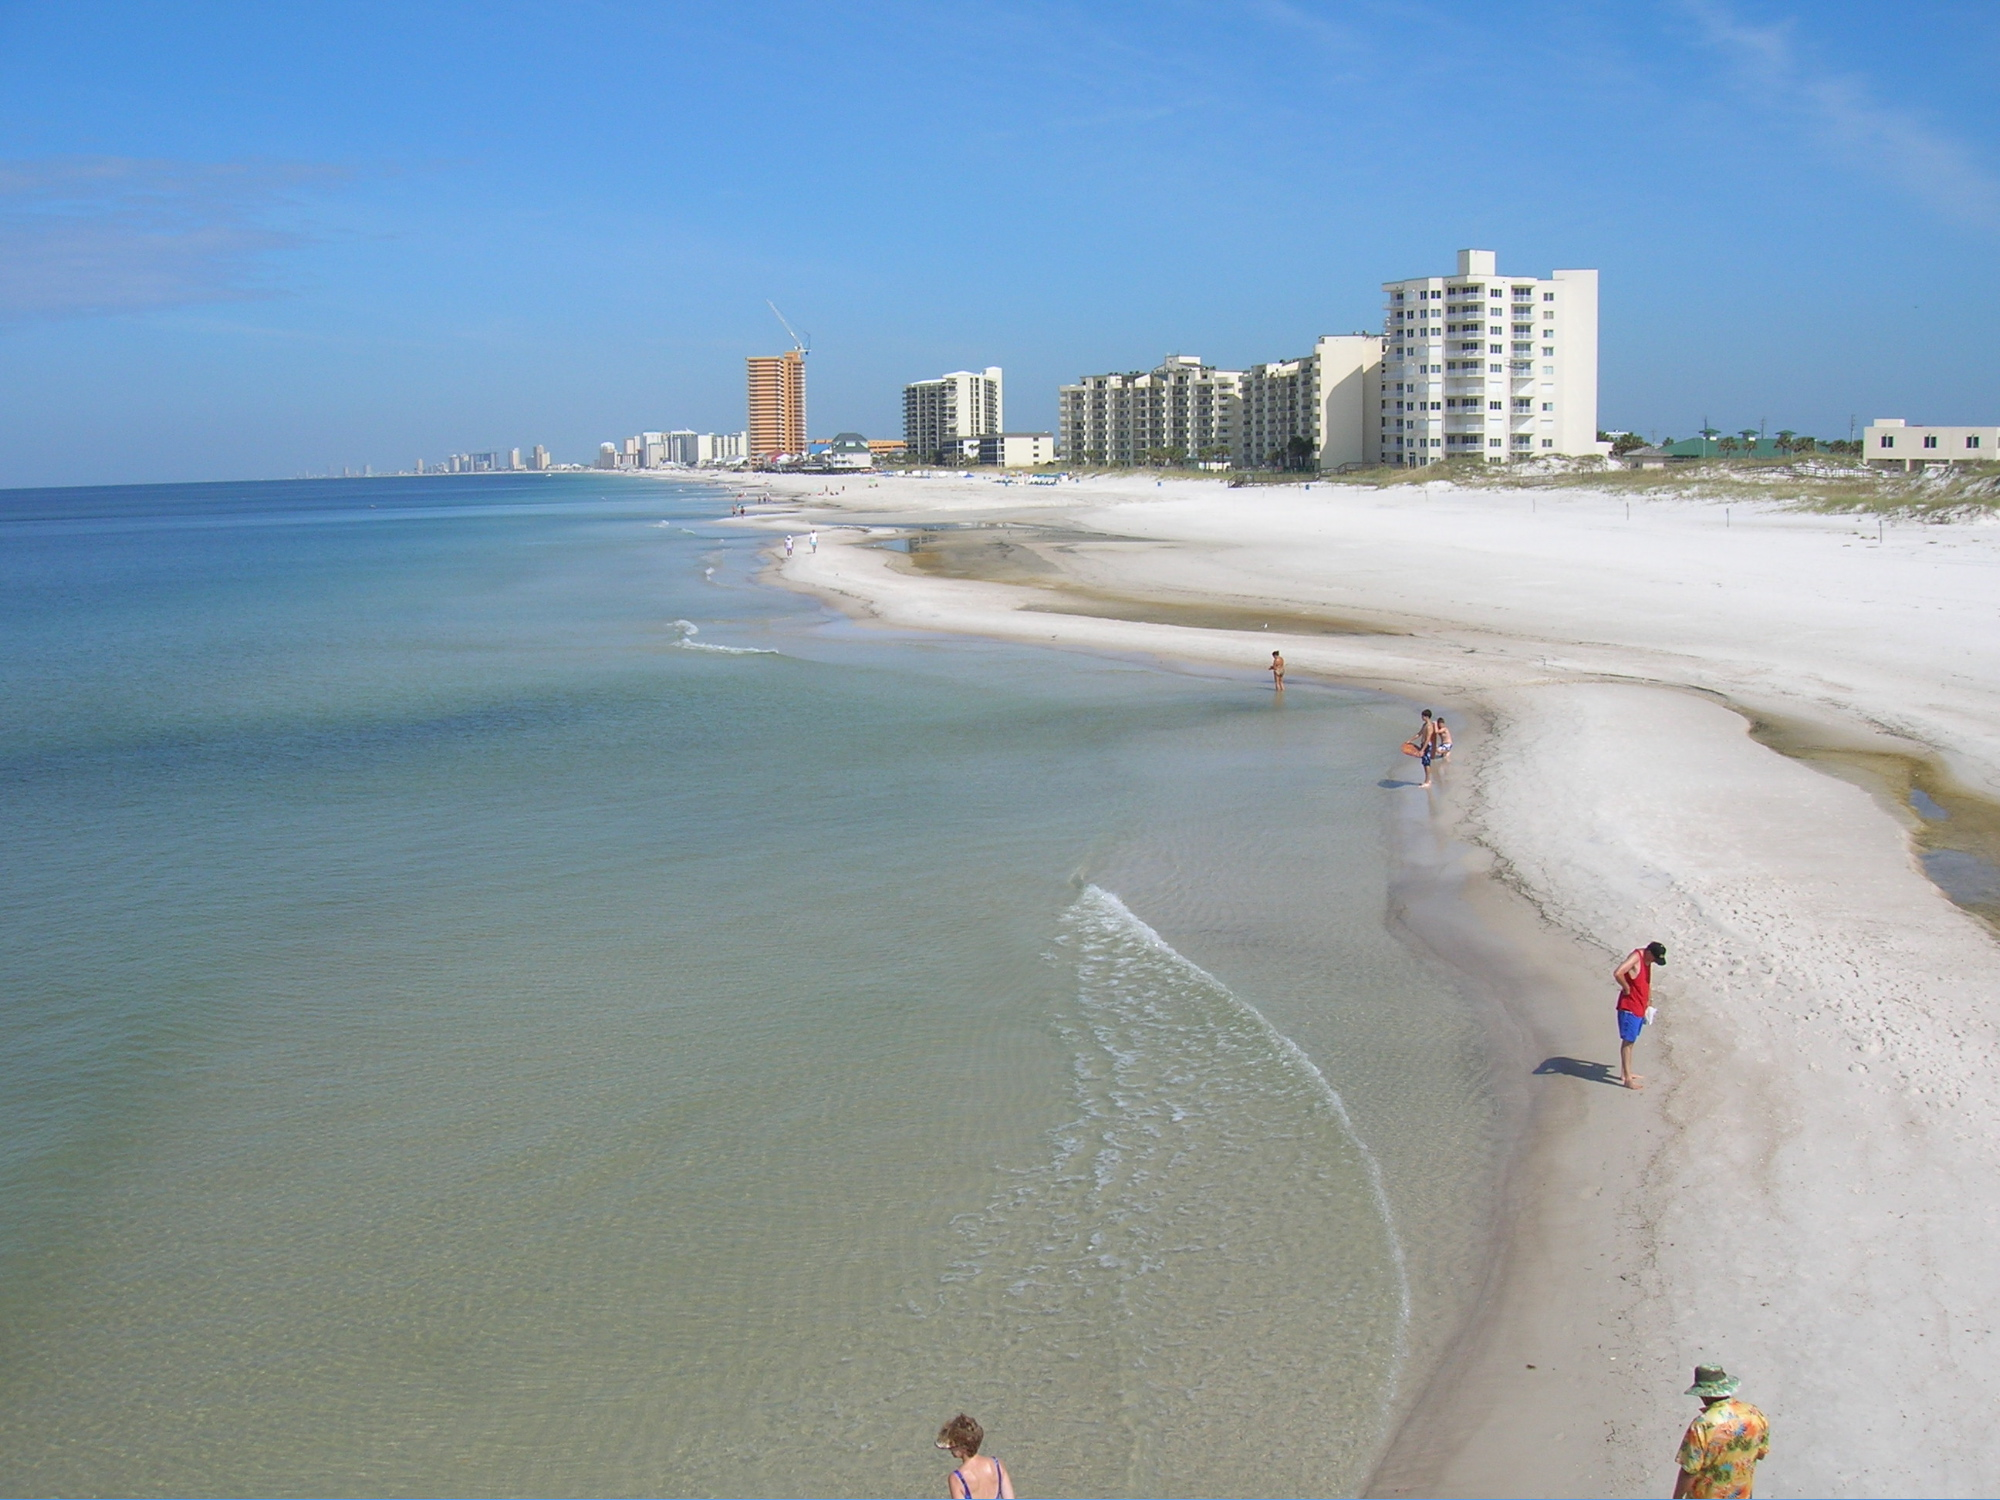 Panama_City_Beach,_Florida_(J. ...beach city